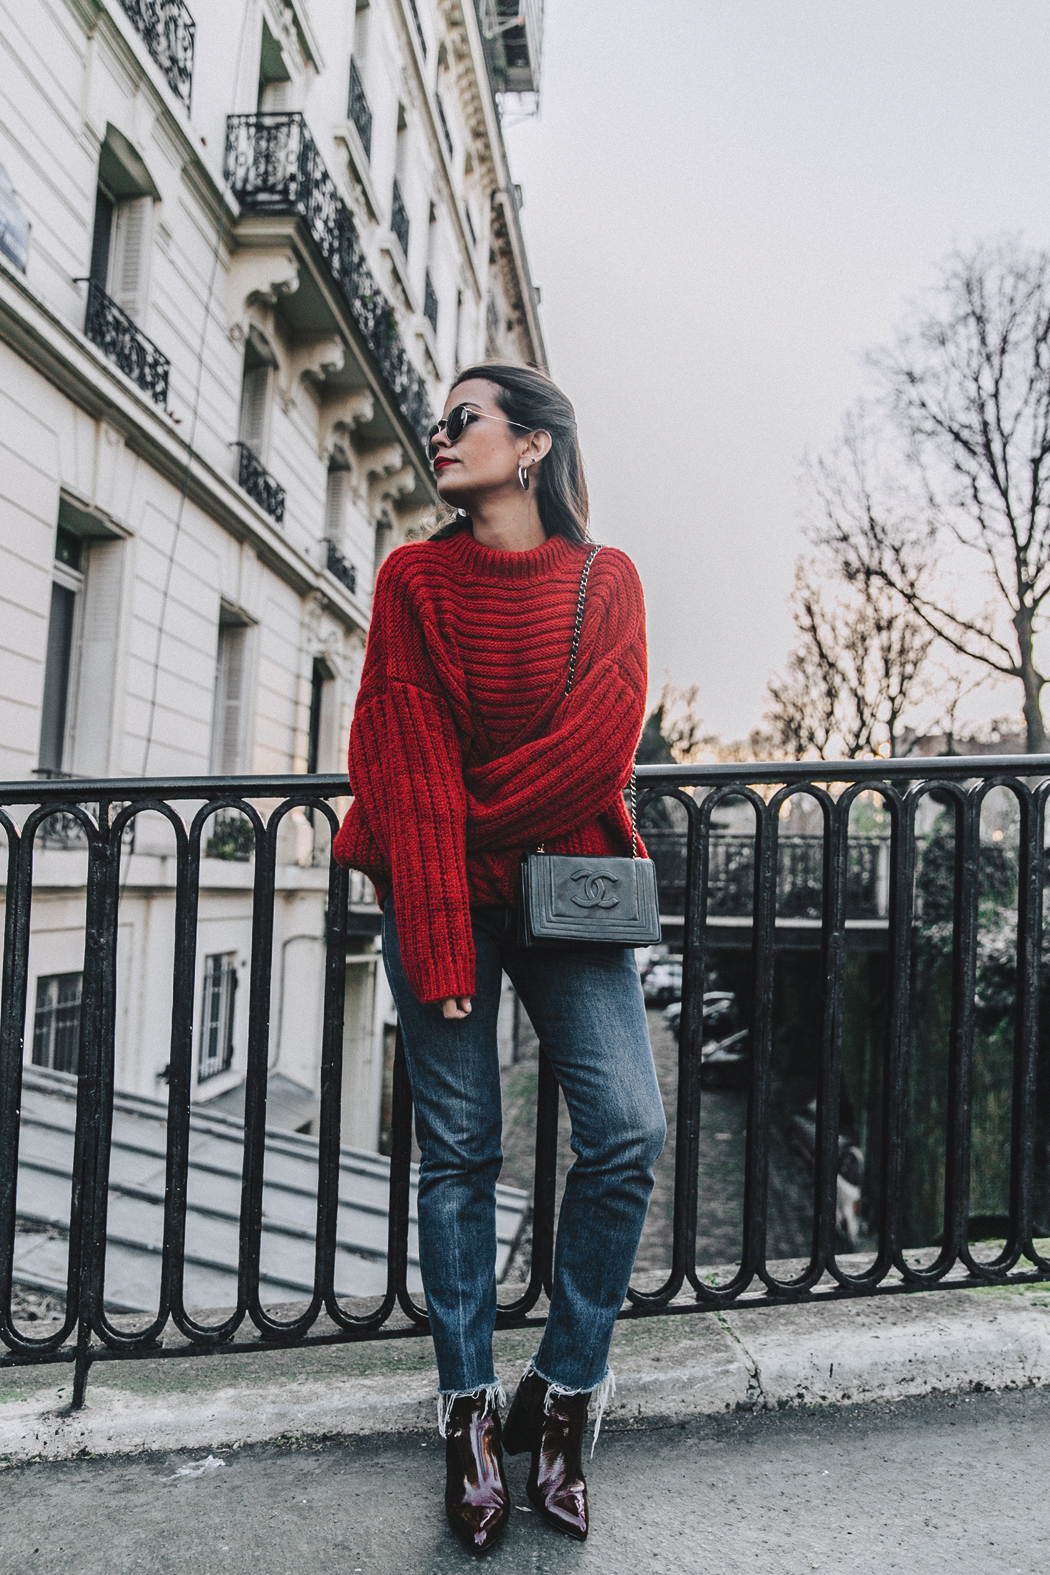 RED-KNITWEAR-Levis-Jeans-Red_Boots-Outfit-Street_Style-Levis_Vintage-18